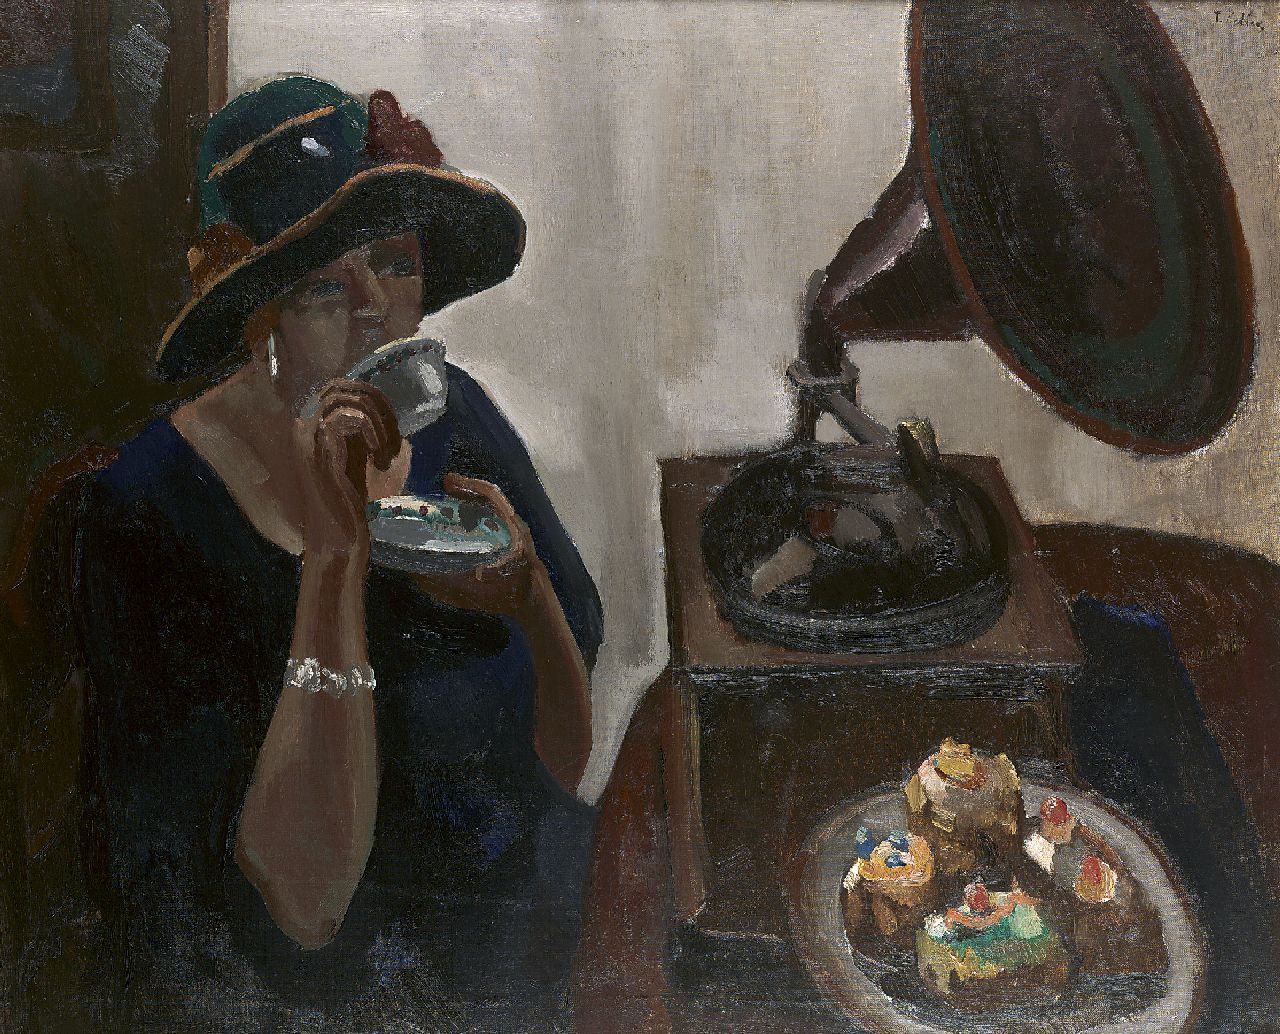 Kelder A.B.  | Antonius Bernardus 'Toon' Kelder | Paintings offered for sale | A lady drinking tea with pastry and a grammophone, oil on canvas 90.4 x 110.4 cm, signed u.r.